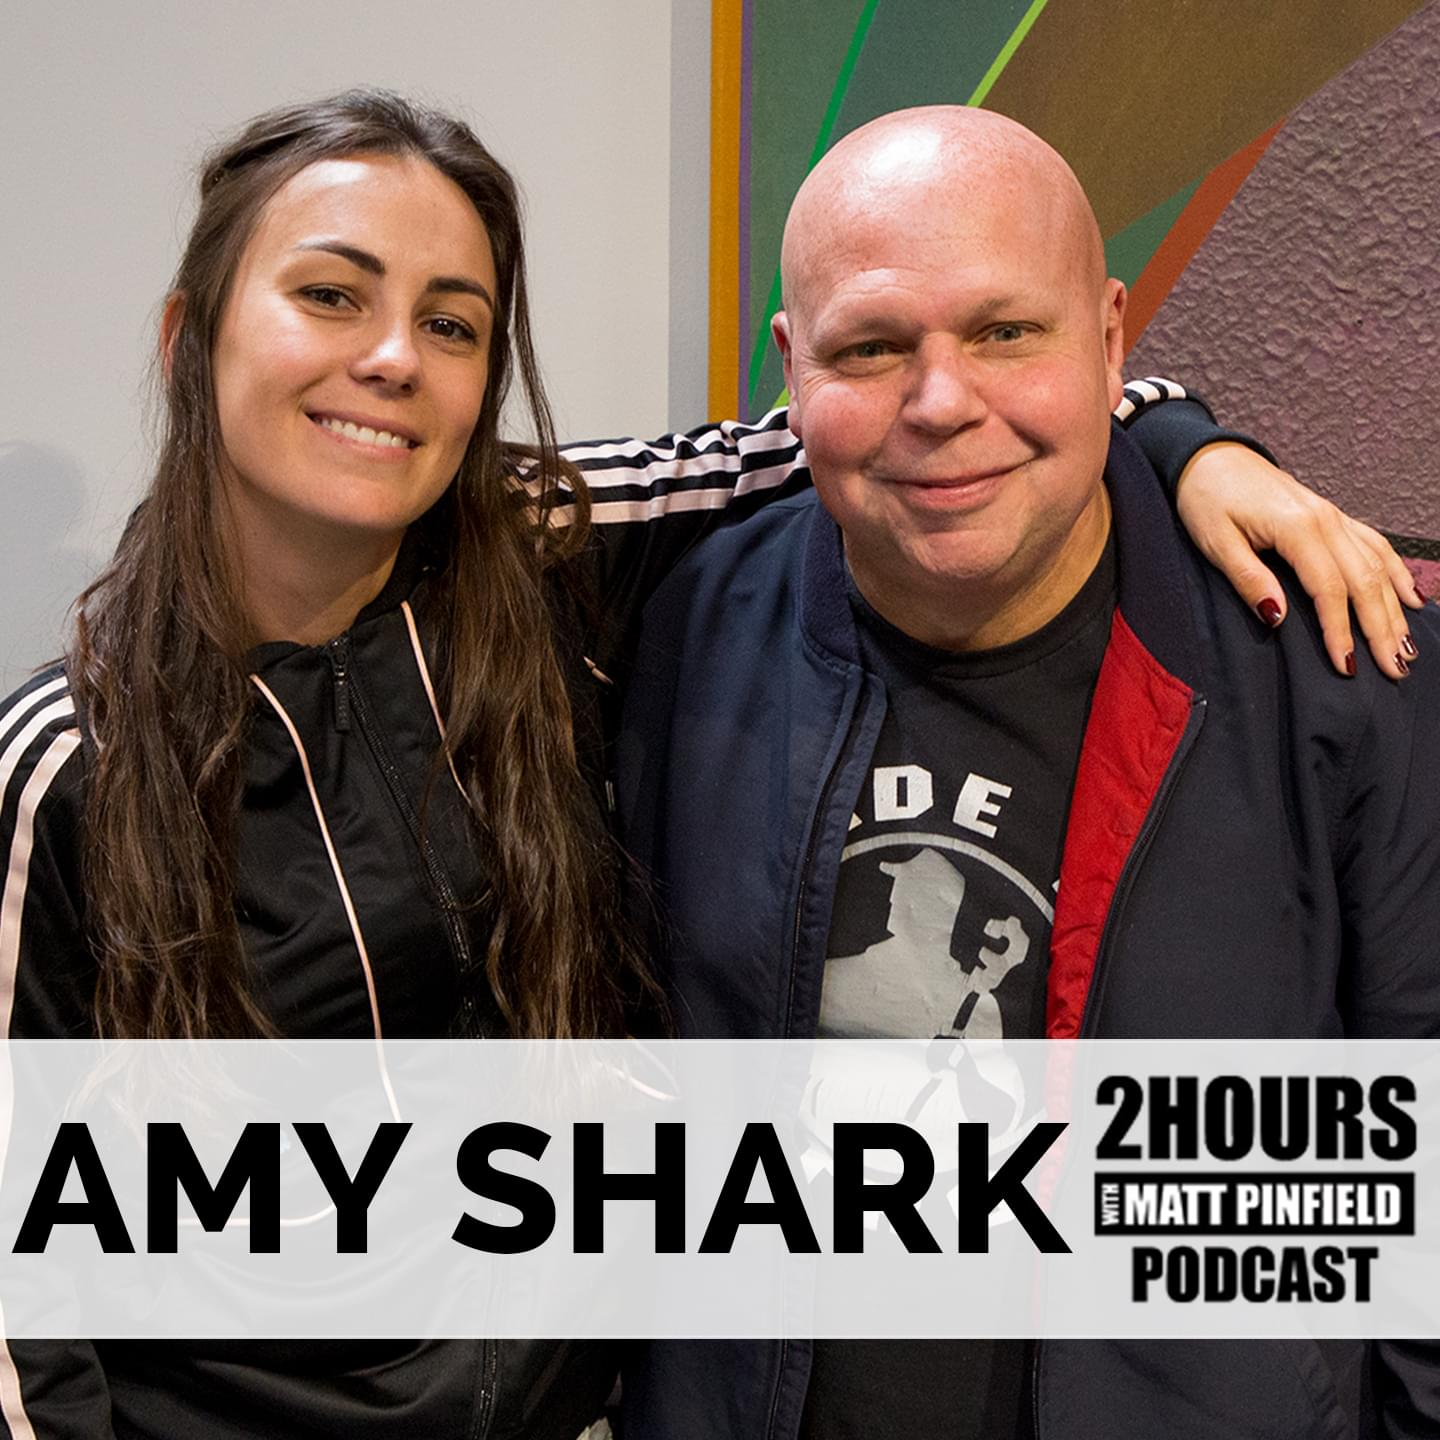 Podcast: Amy Shark/Josh Landau from EASY